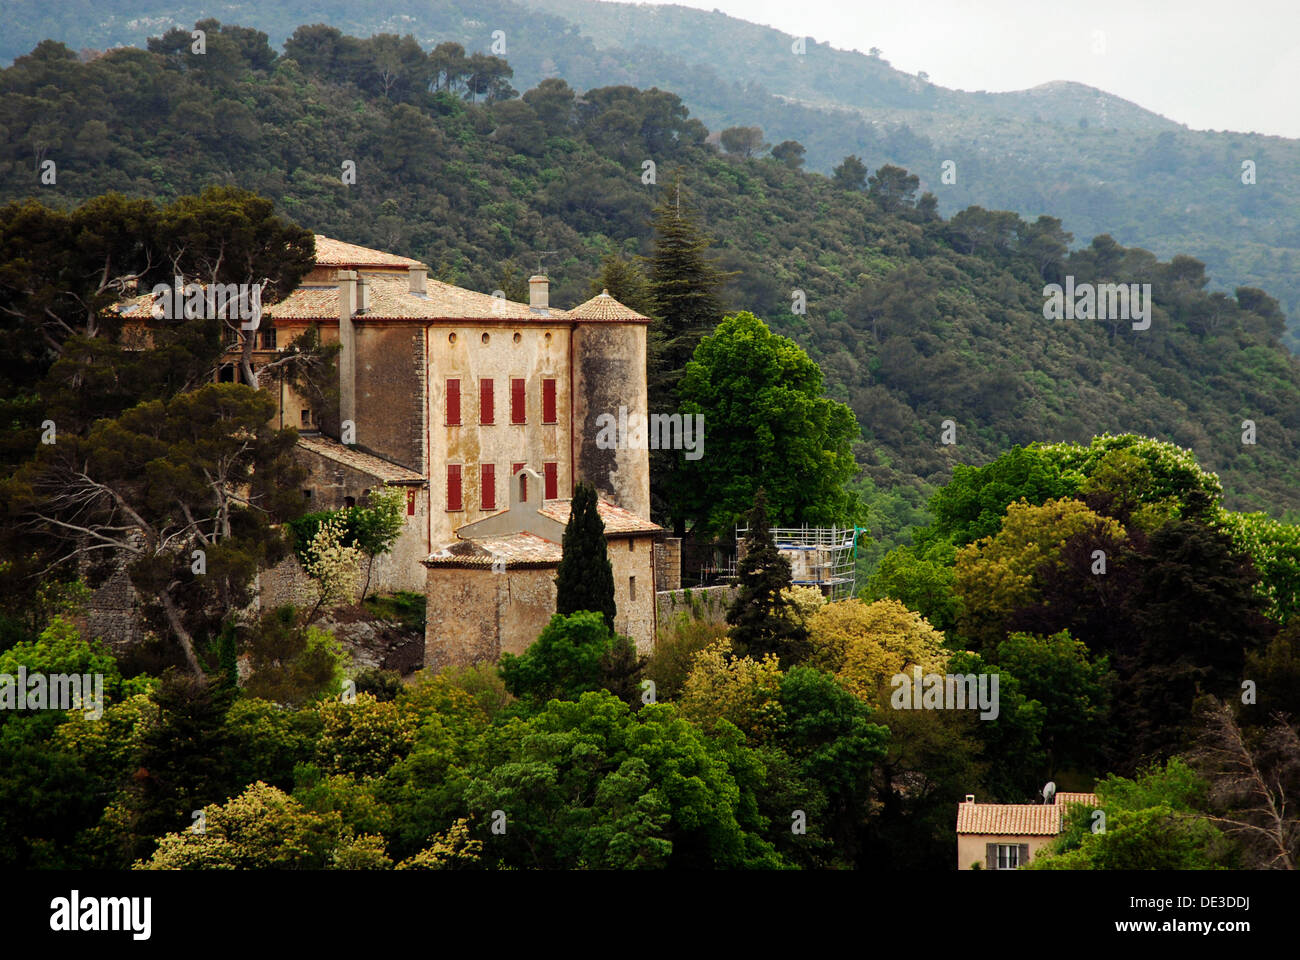 home and final resting place of pablo picasso provence france stock photo royalty free image. Black Bedroom Furniture Sets. Home Design Ideas